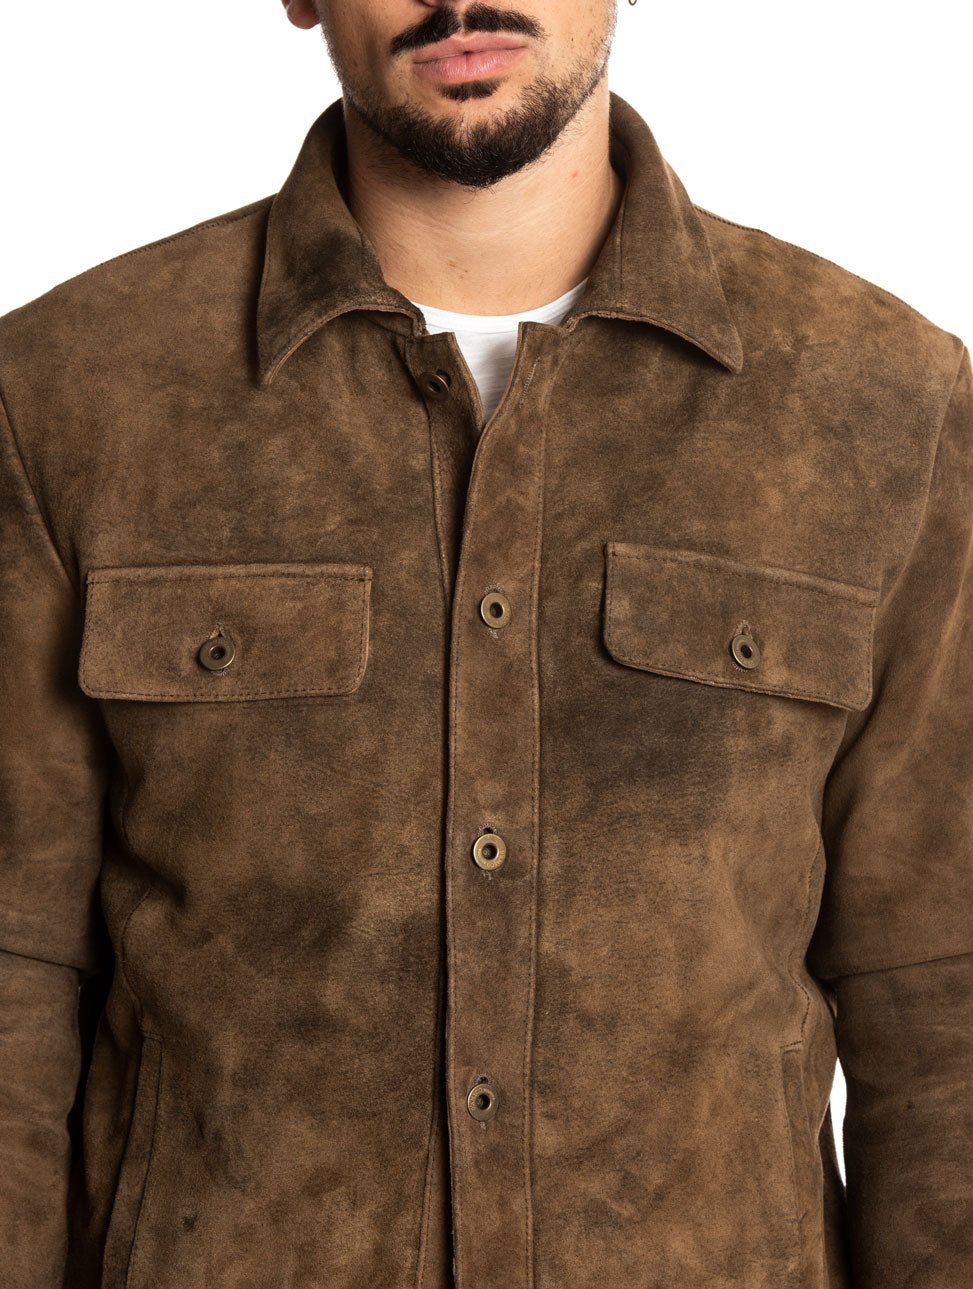 ELWIN JACKET IN BROWN